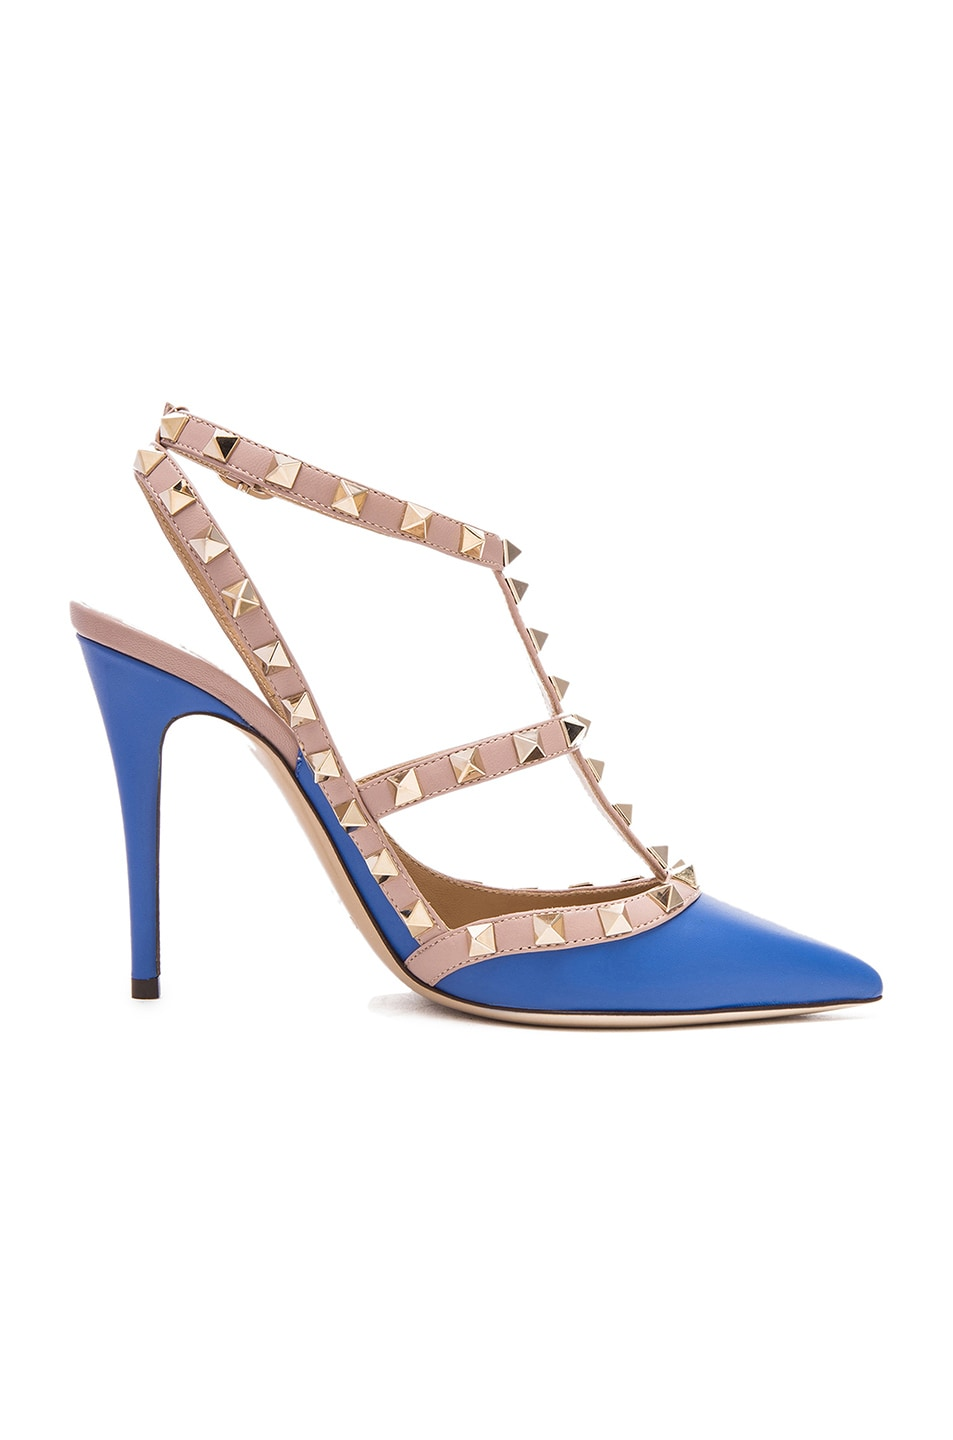 Image 1 of Valentino Rockstud Leather Slingbacks T.100 in Light Sapphire